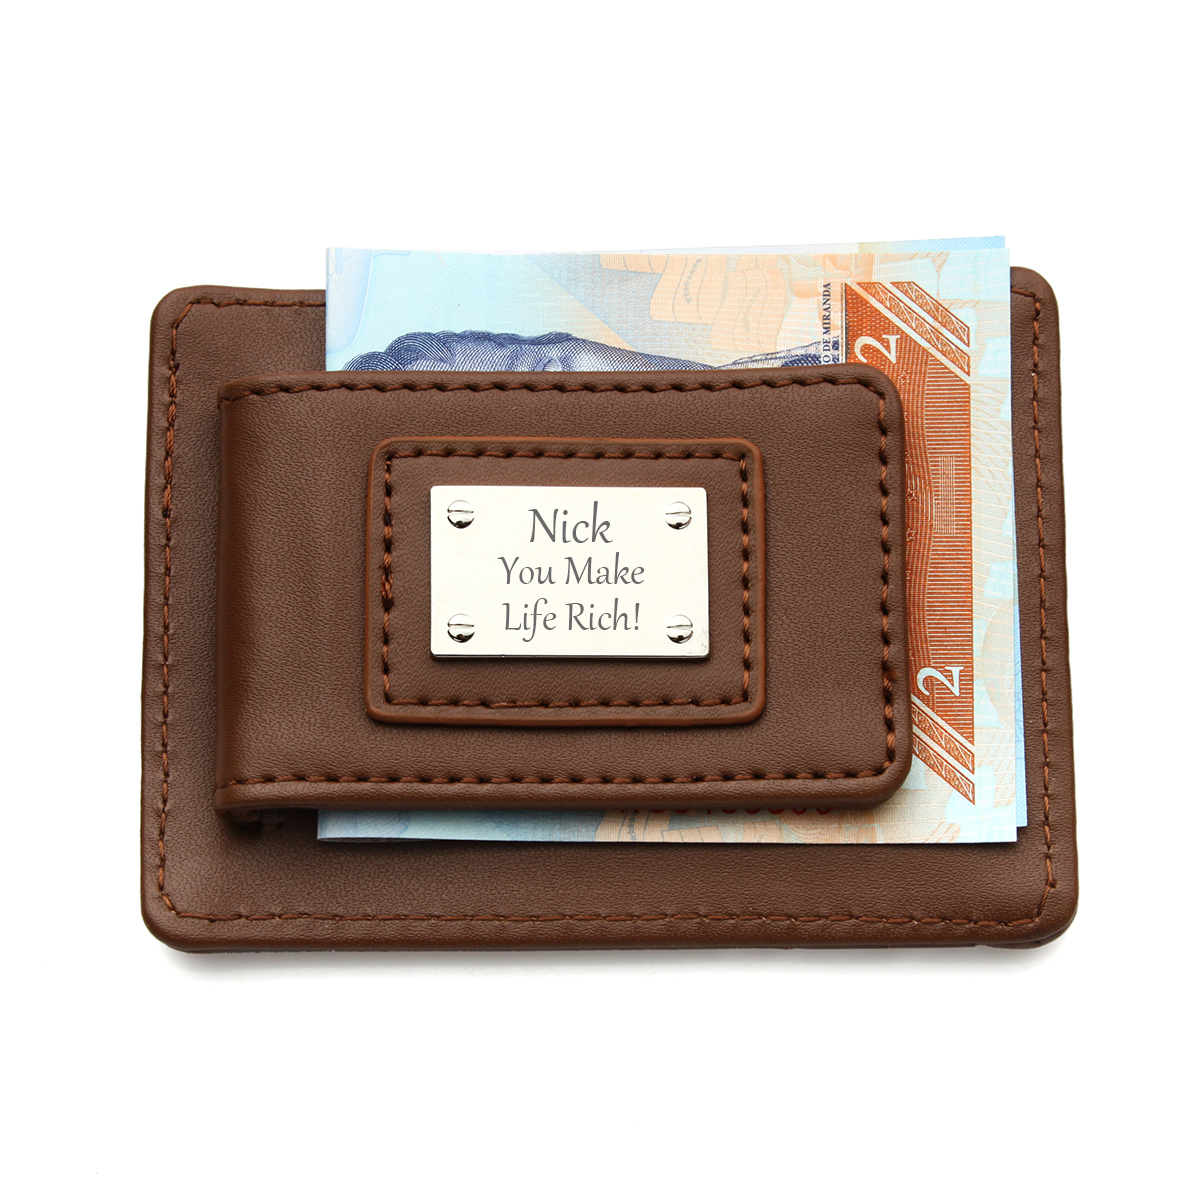 Personalized Groomsmen Gift Leather Money Clip Wallet For Men Valentines Fathers Day Gifts Custom Birthday Favor For Boyfriend